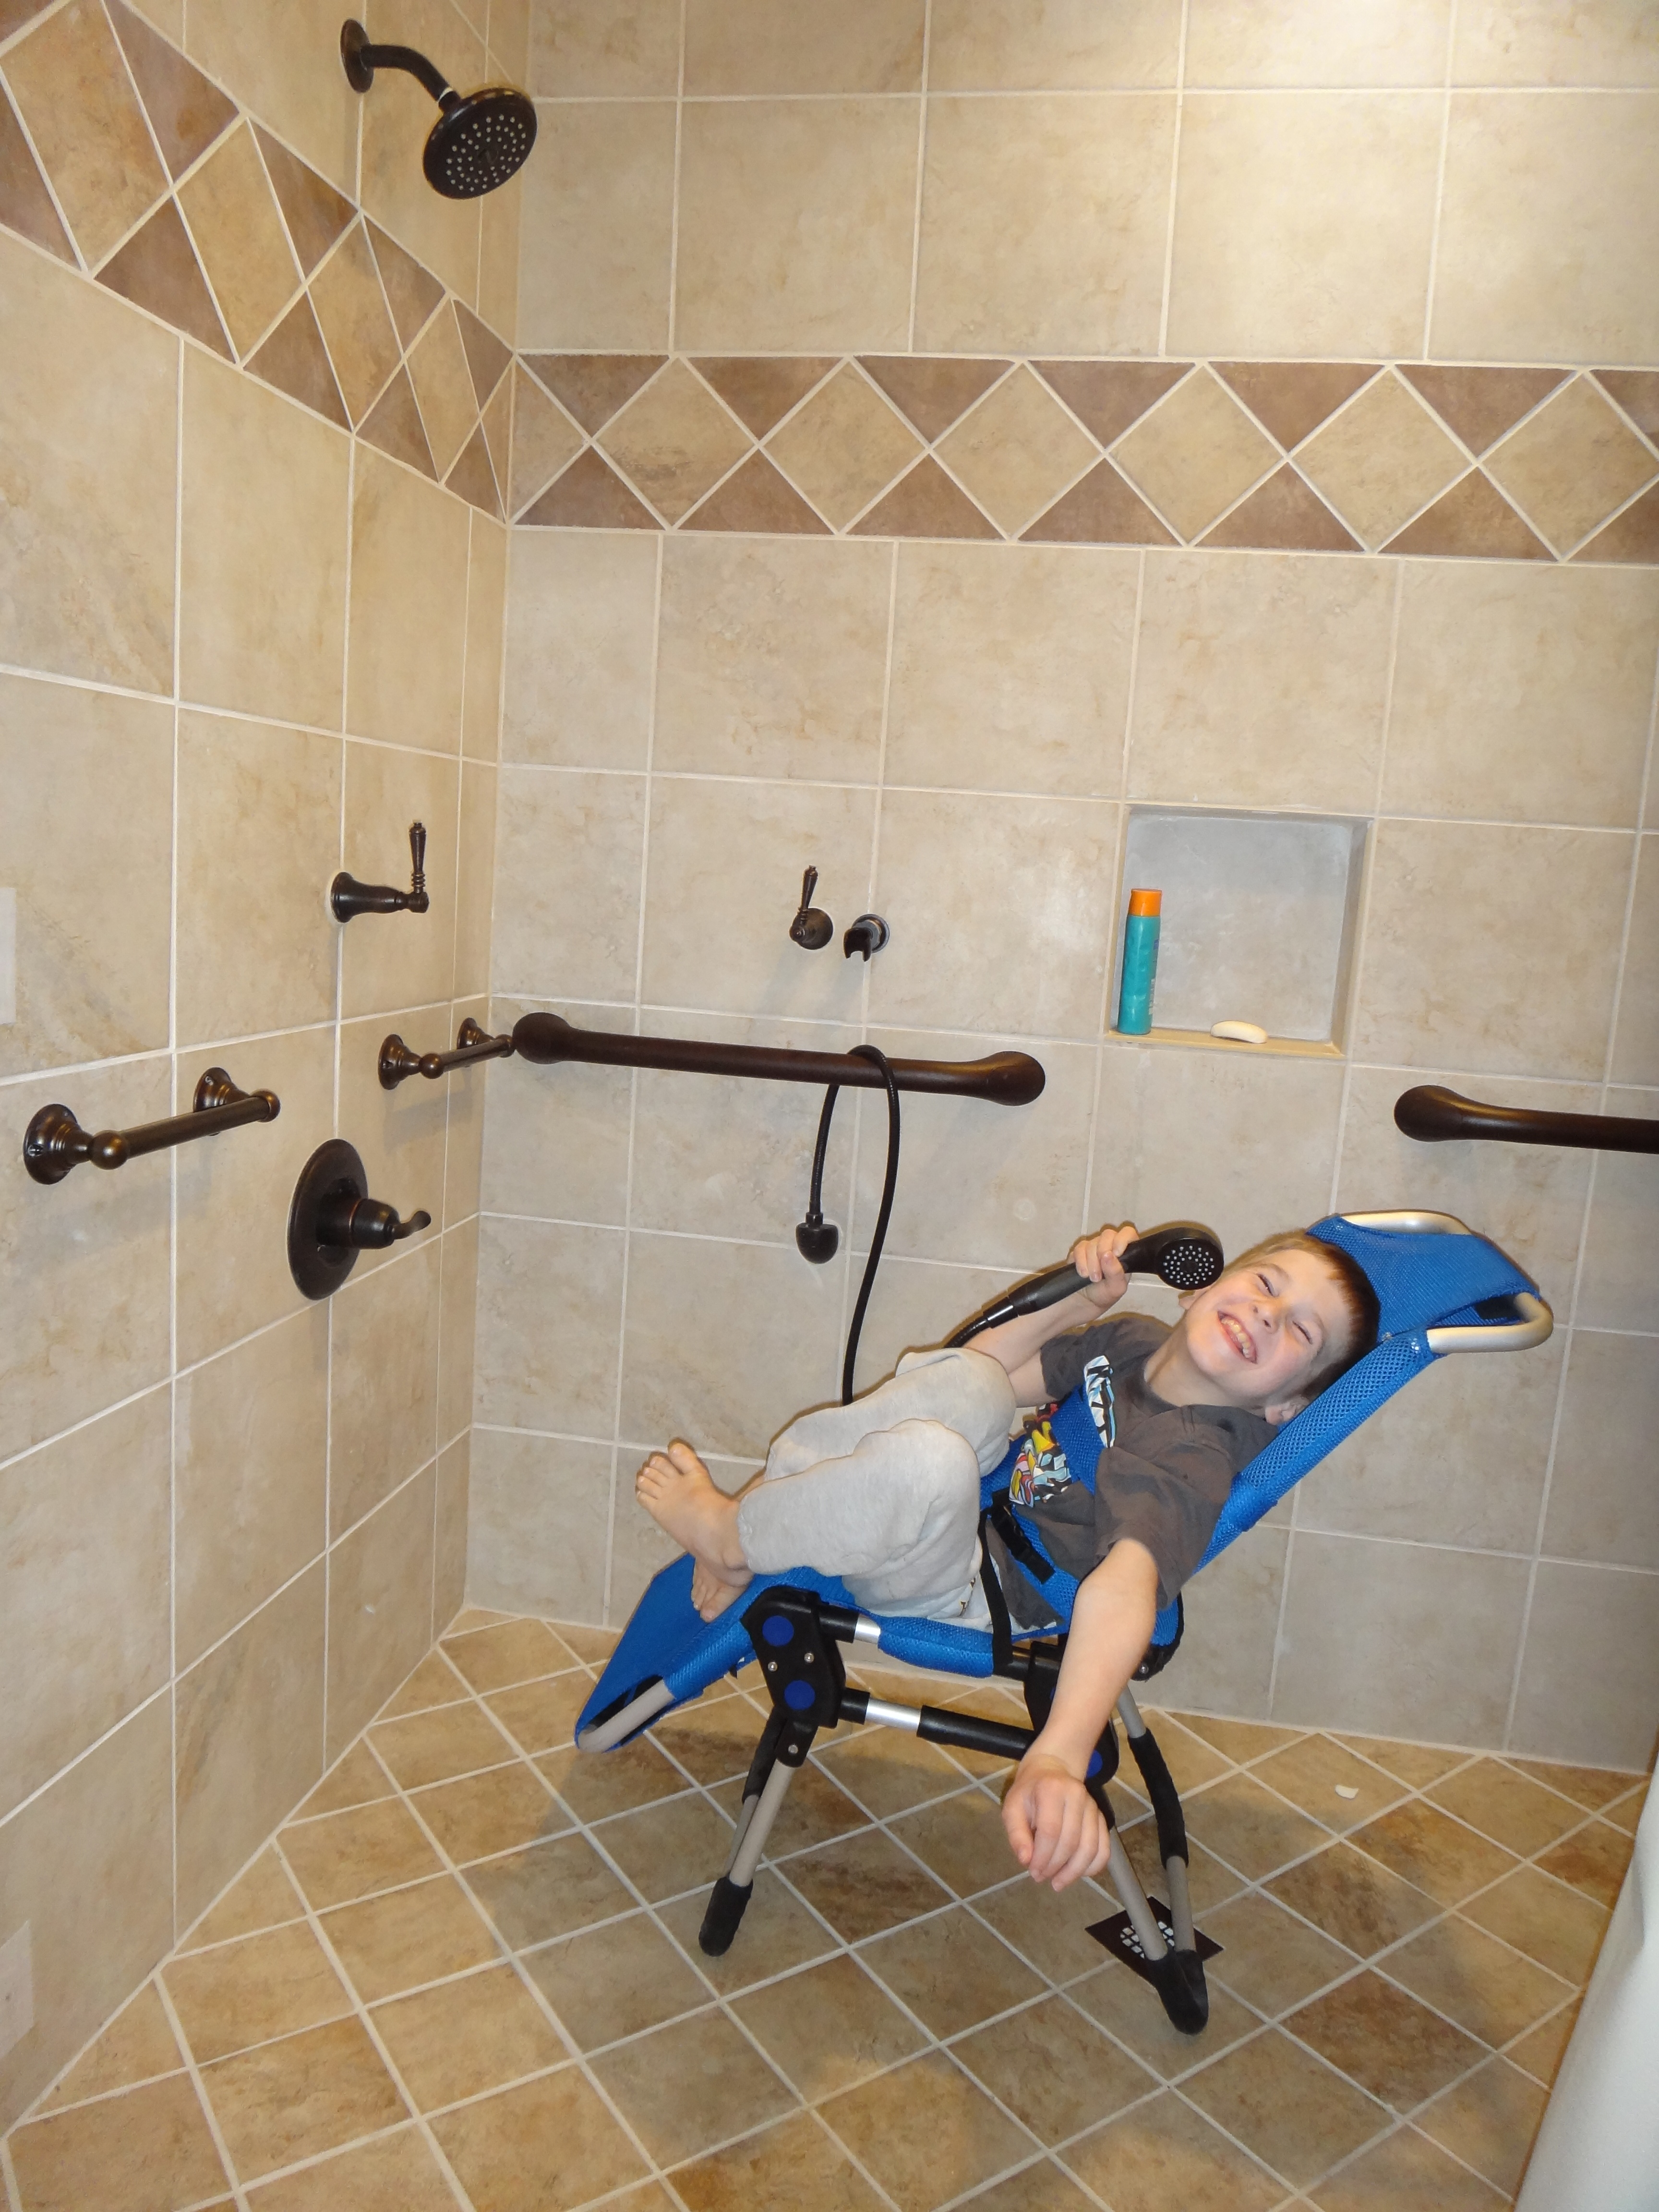 Shower Chairs For Disabled How We Remodeled Our Bathroom To Make It Accessible